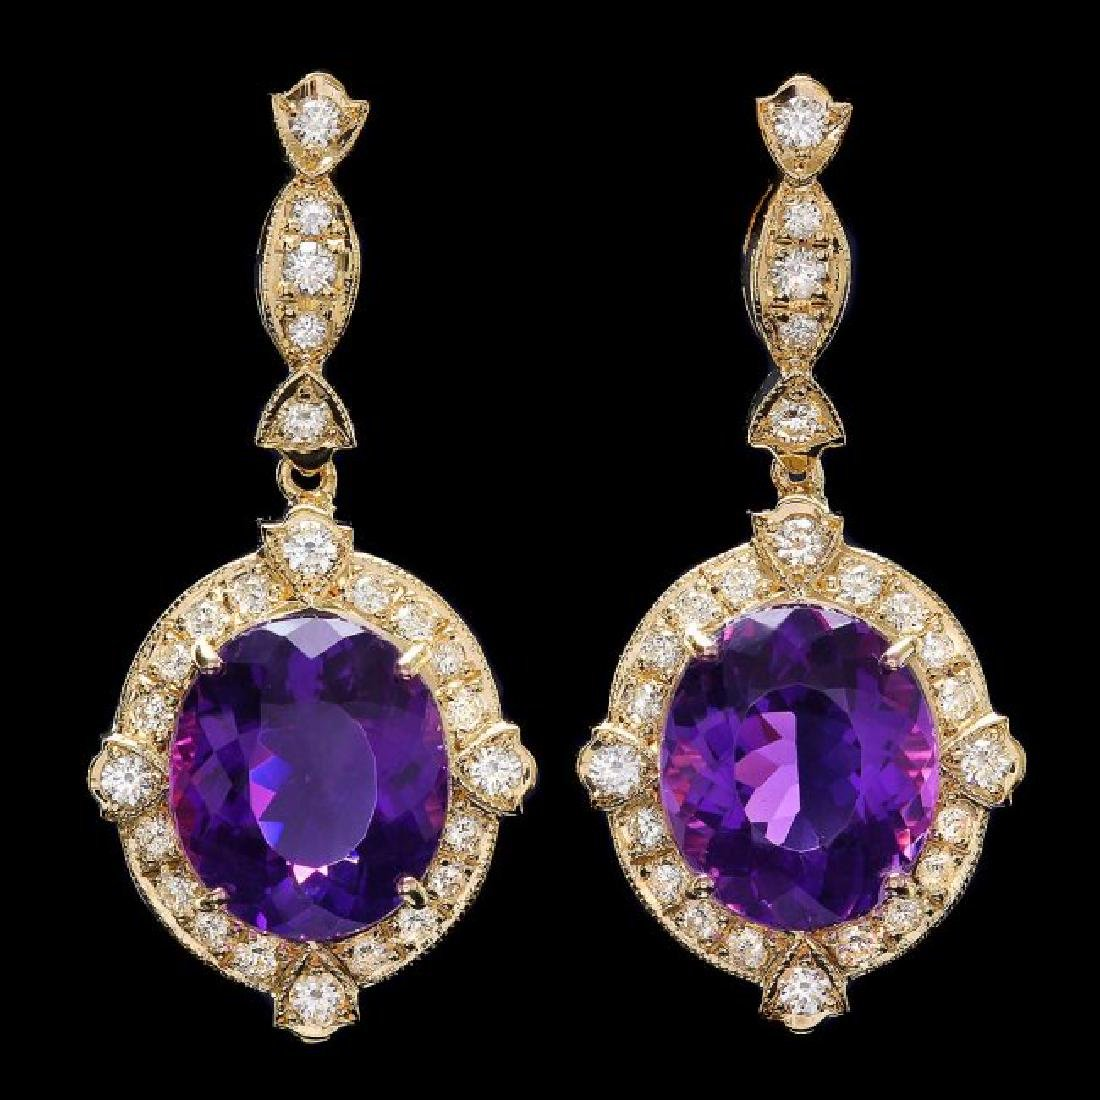 14k Gold 16ct Amethyst 1.7ct Diamond Earrings